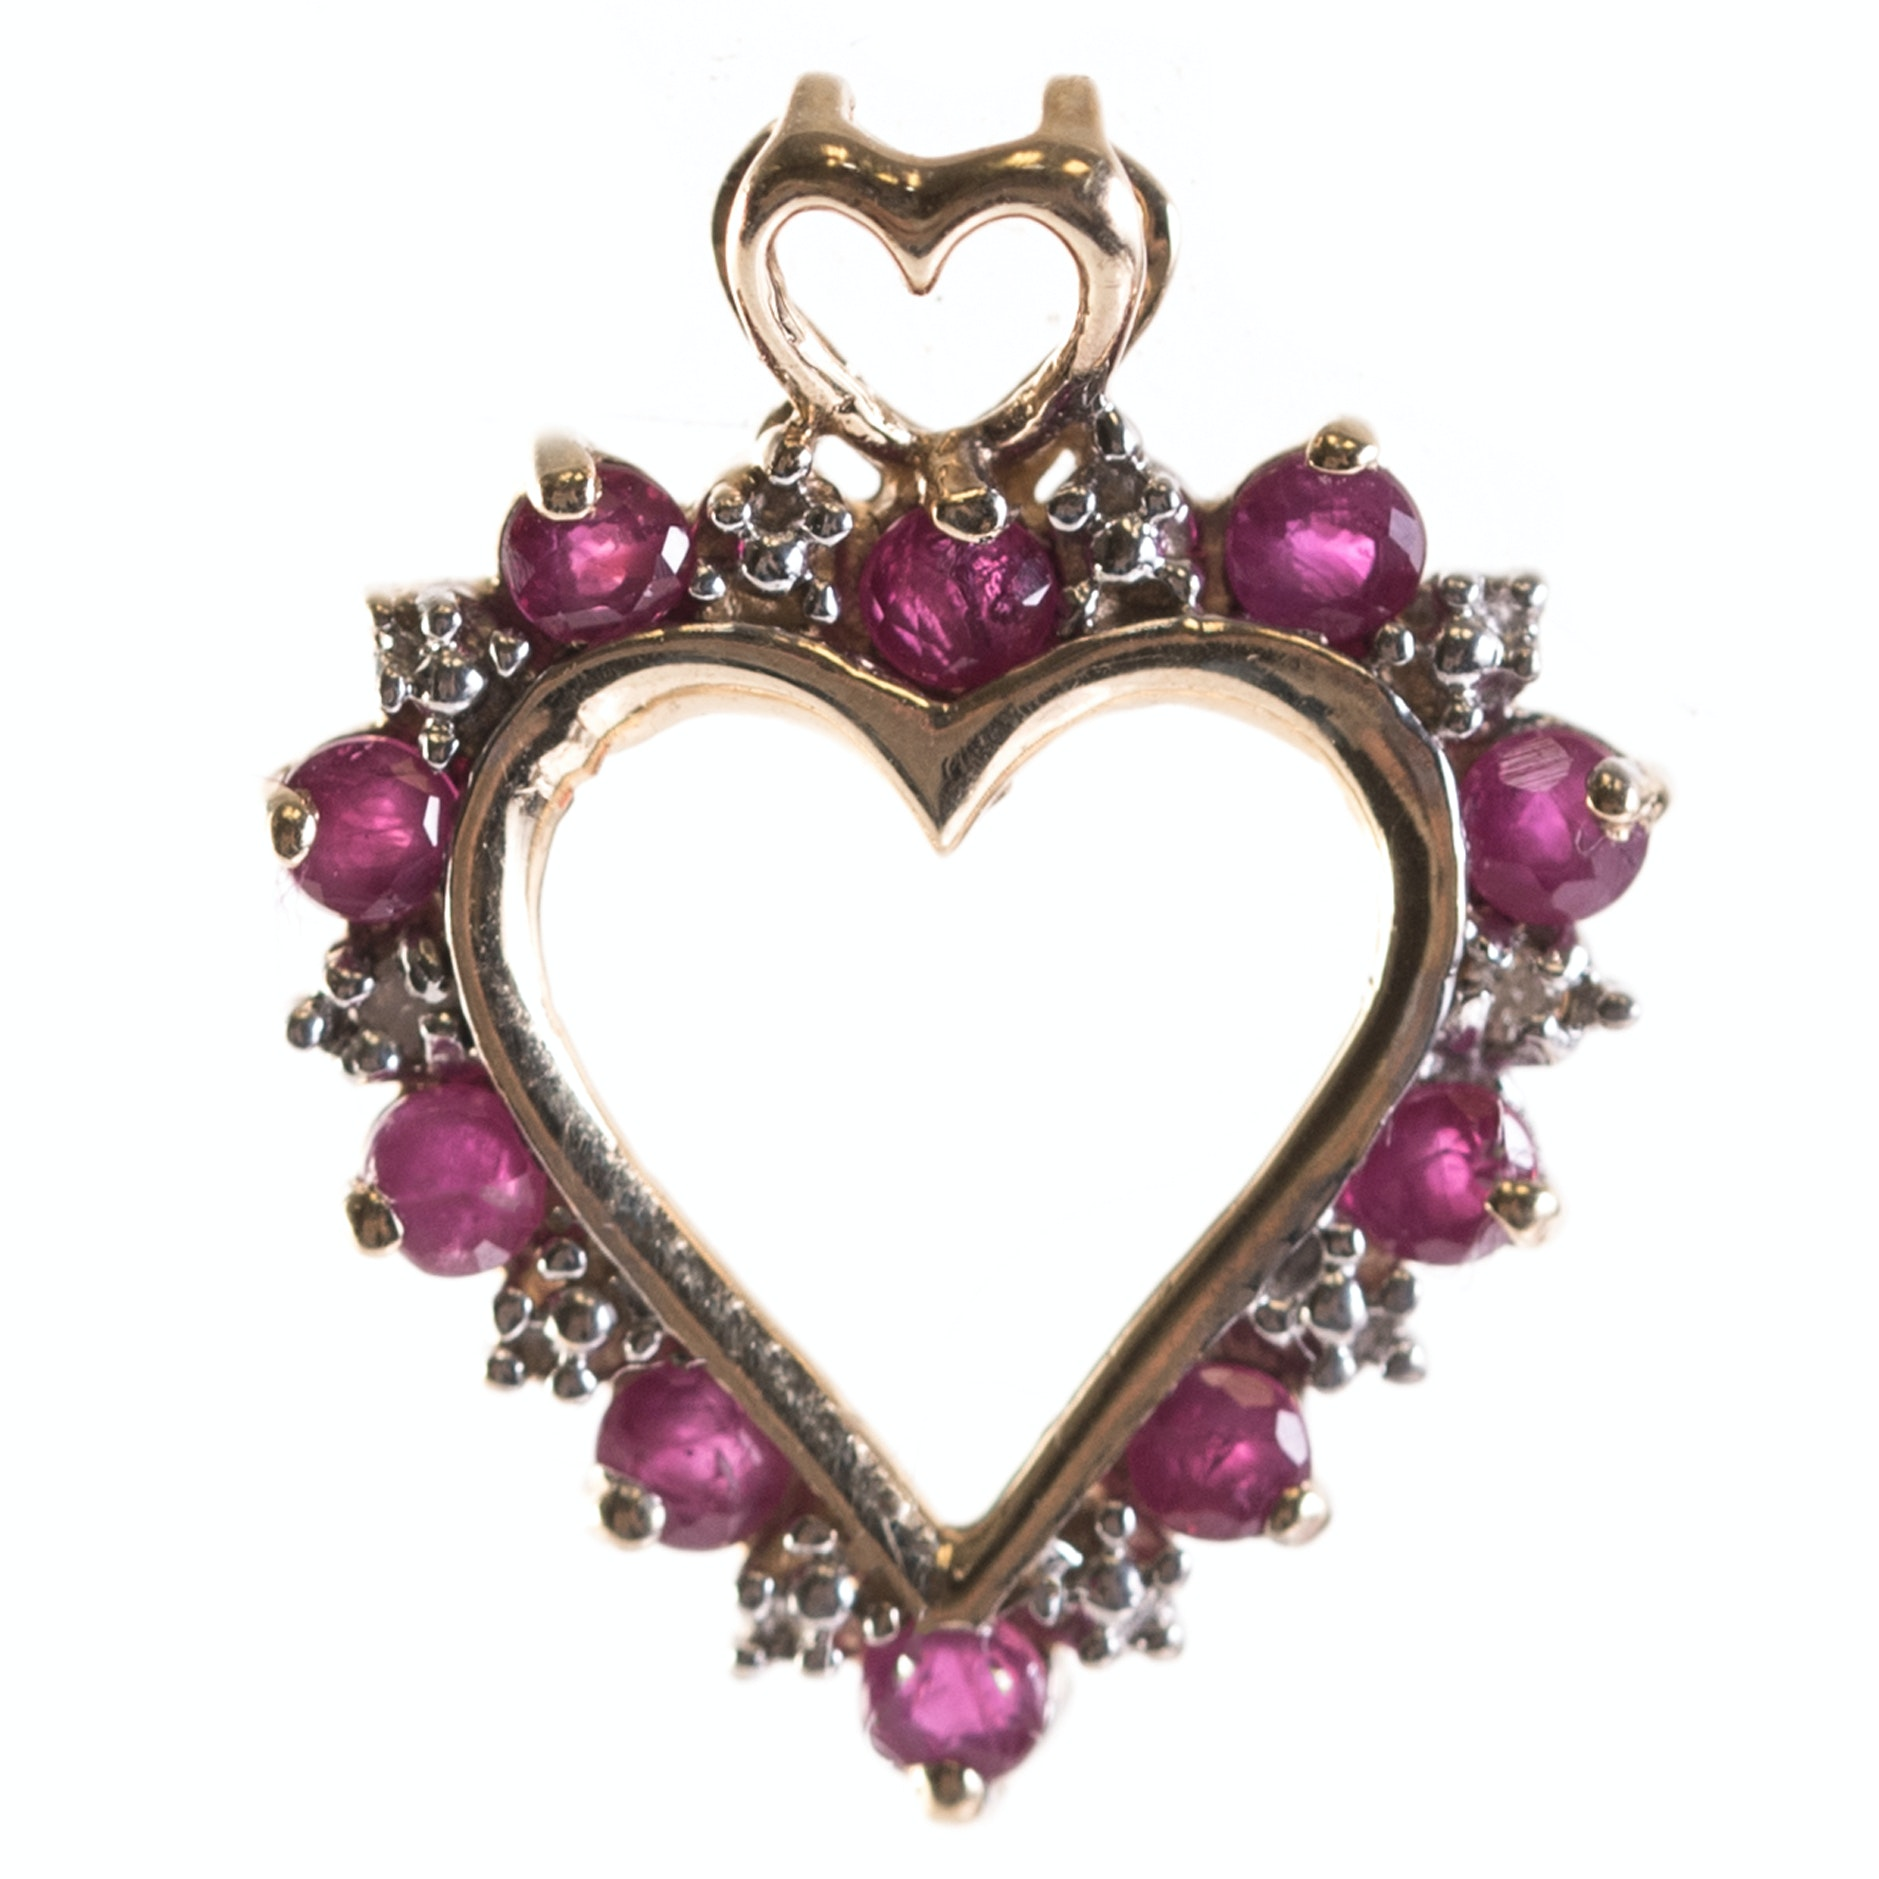 10K Yellow Gold, Ruby, and Diamond Open Heart Pendant